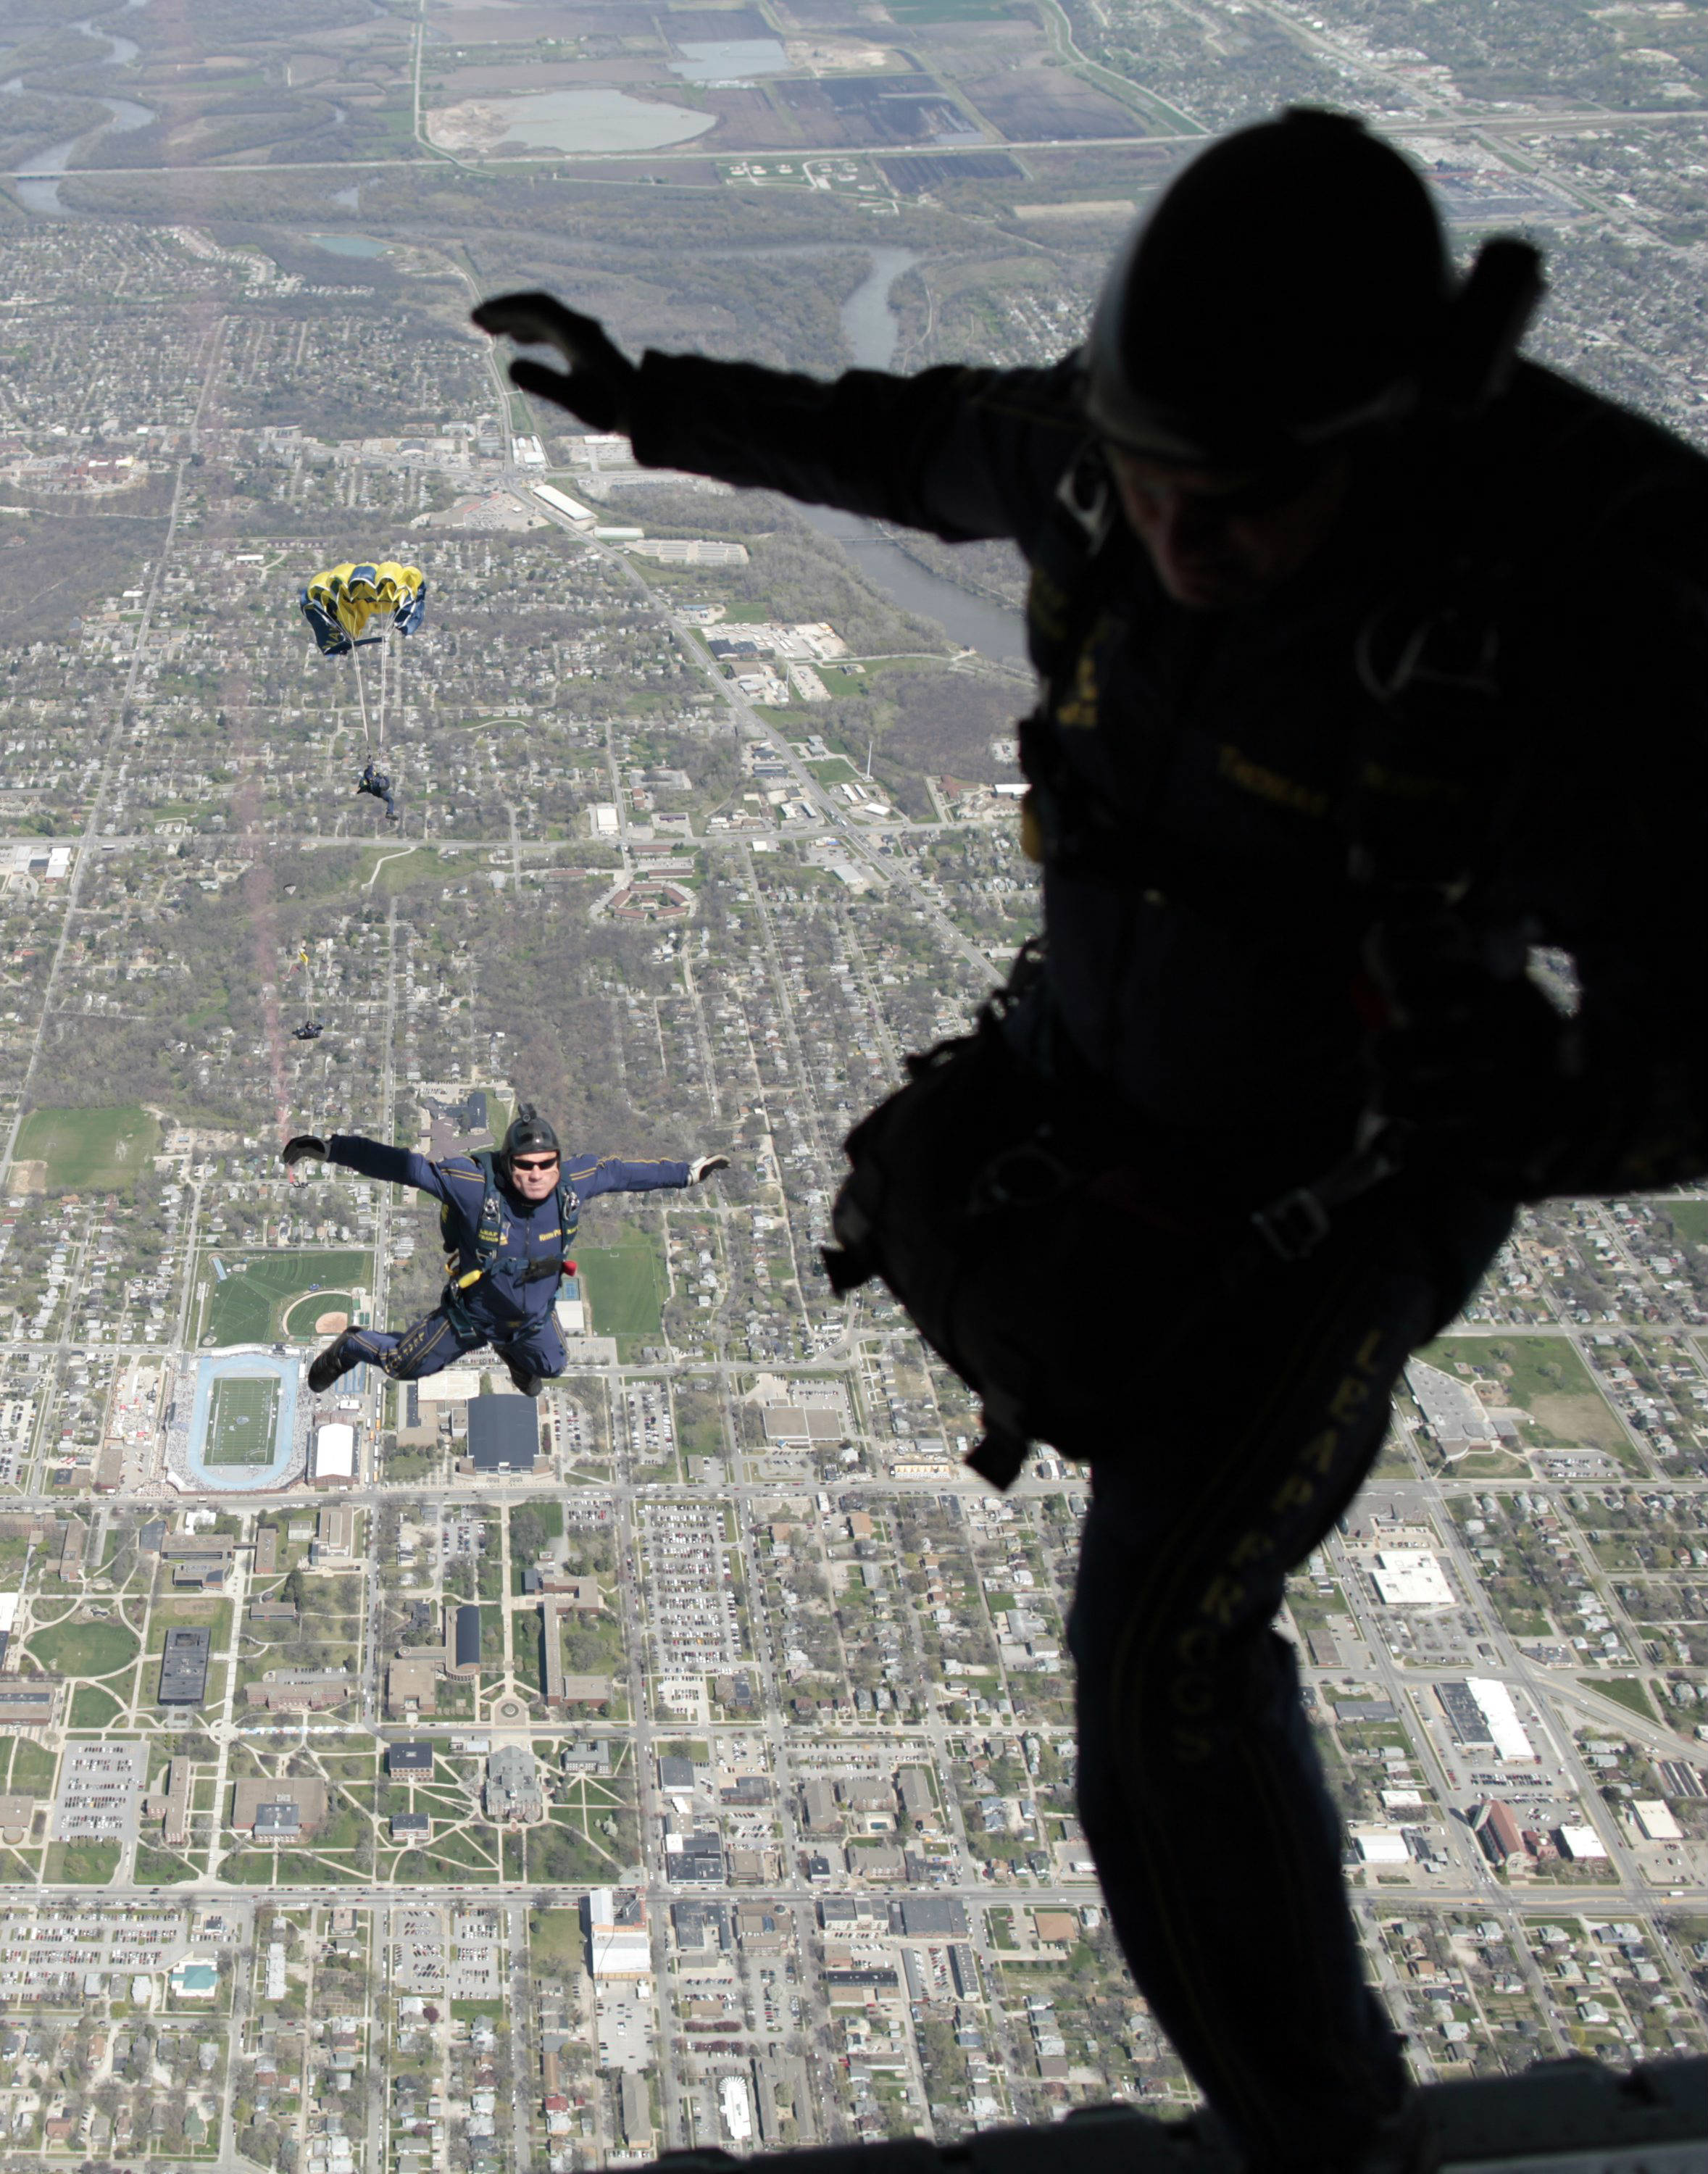 US Navy SEALs parachute jump